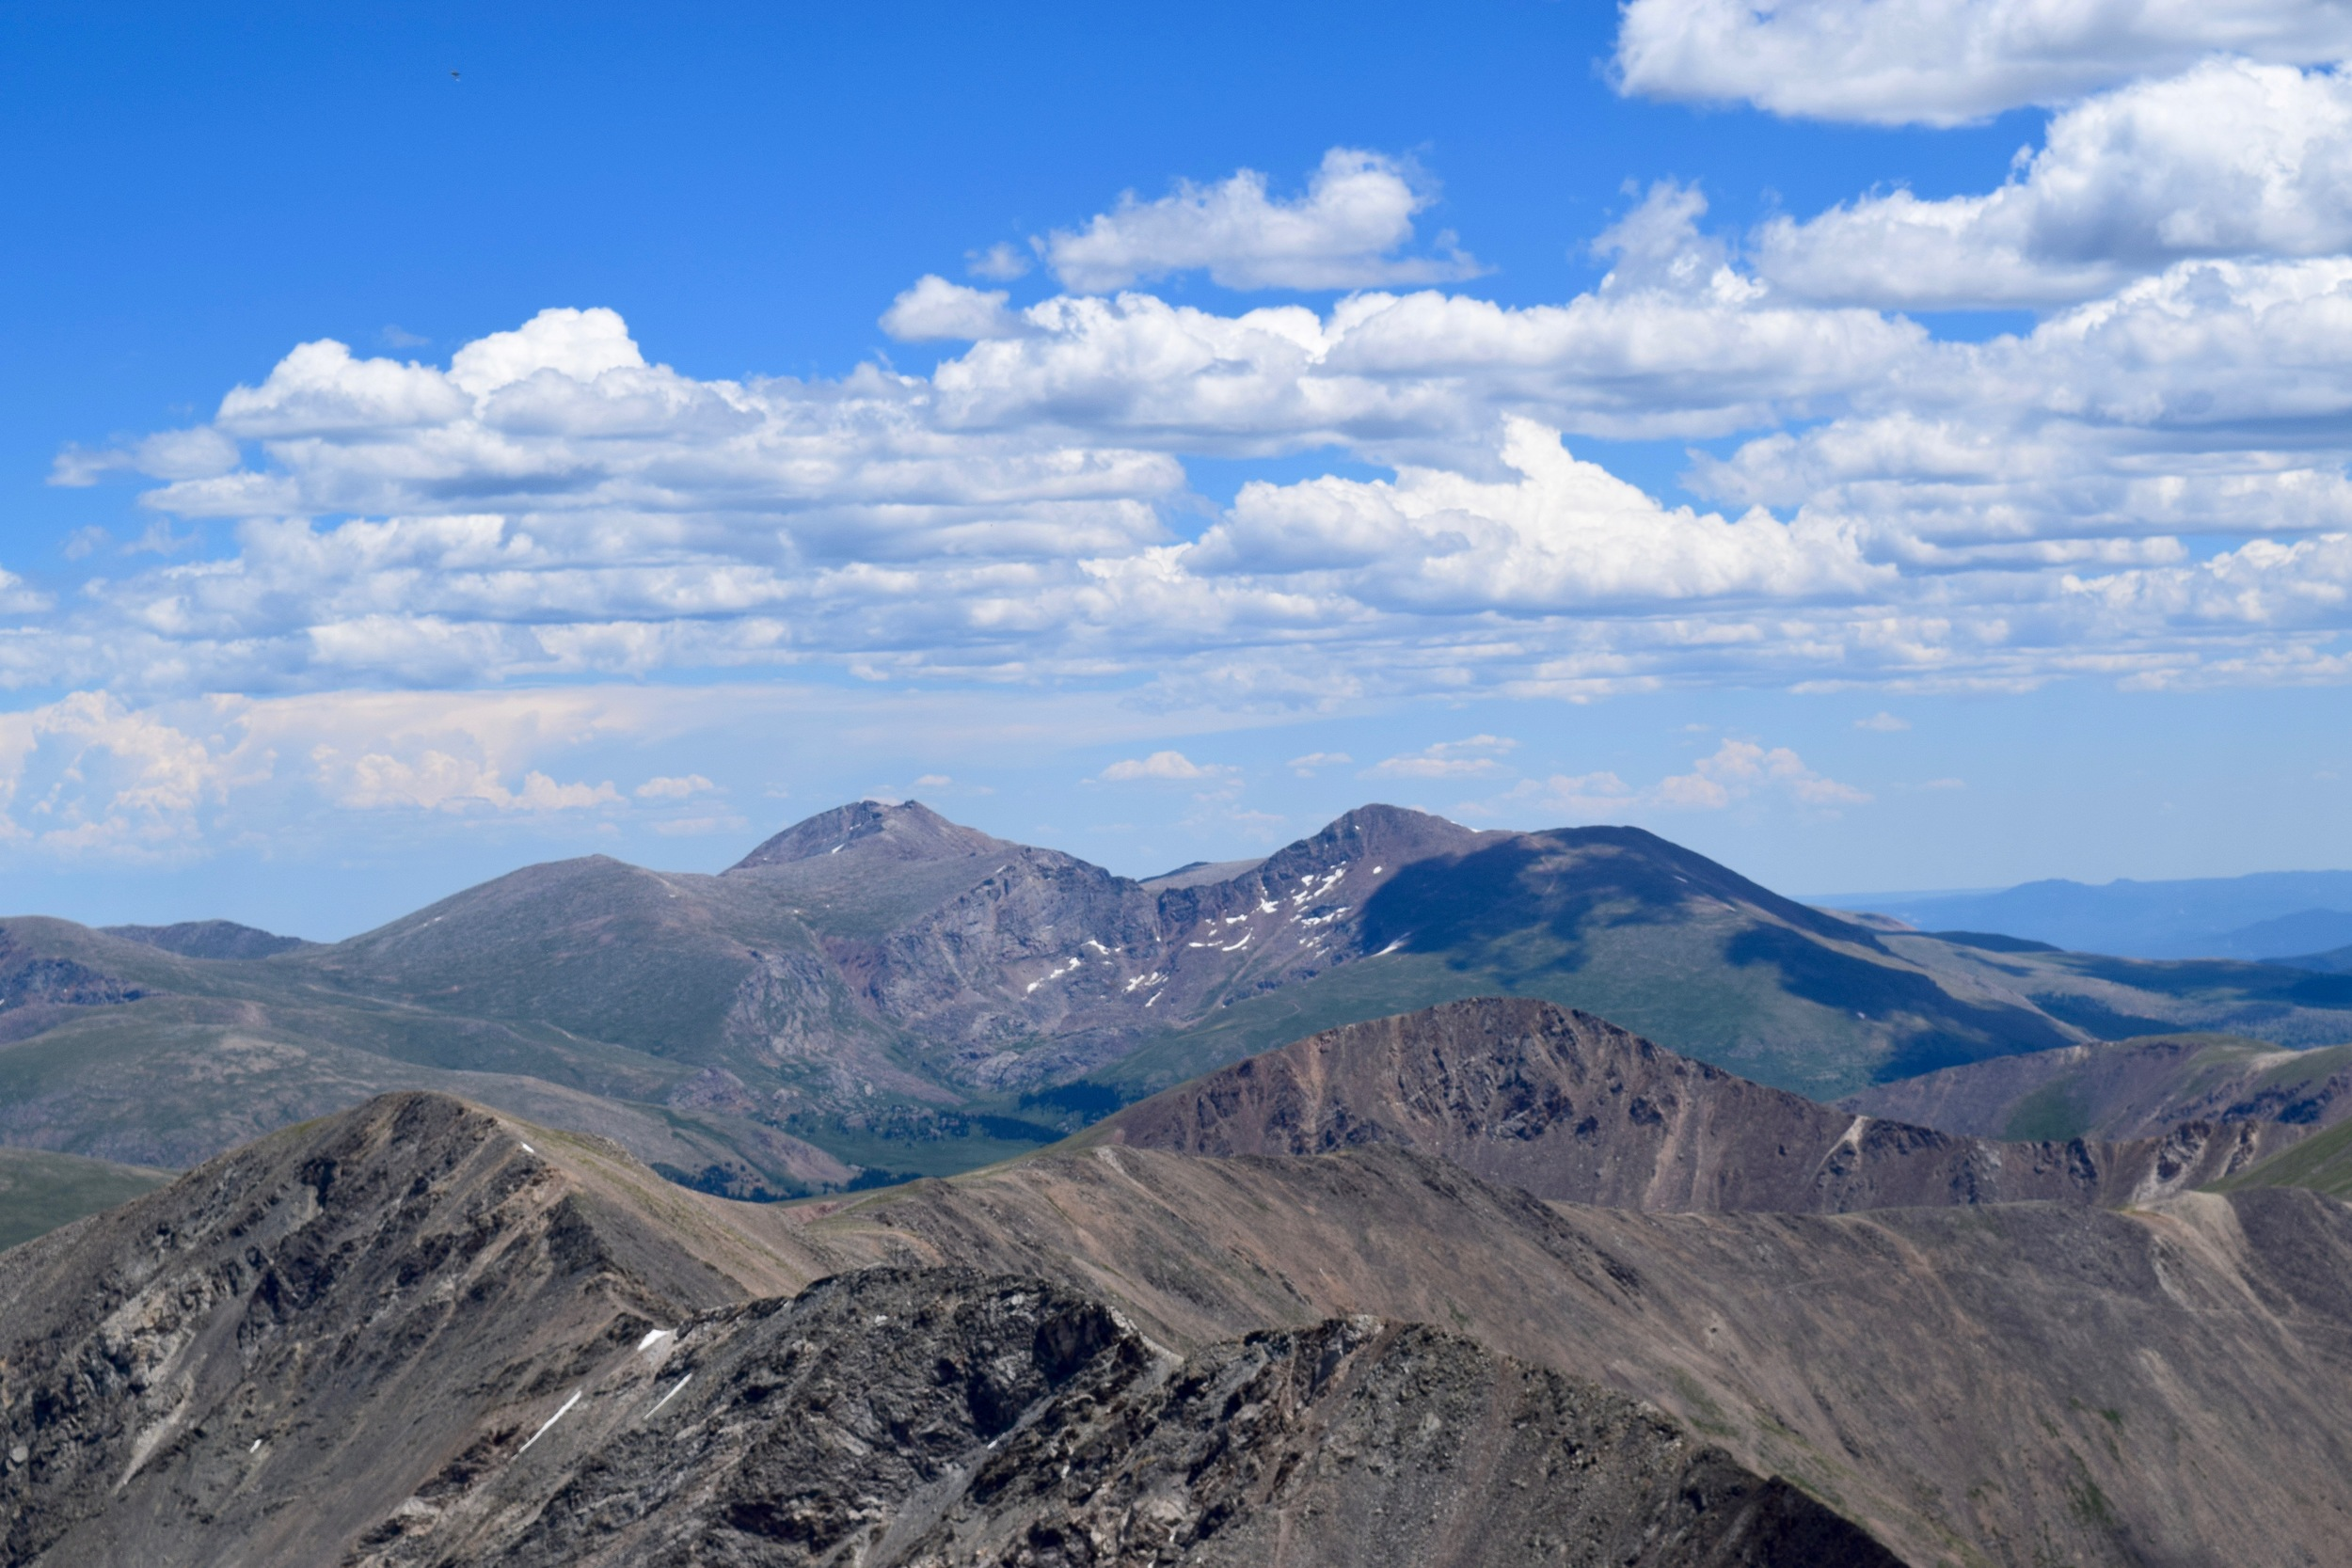 Mt. Bierstadt and Mt. Evans to the east. I remember standing on top of Bierstadt looking at Grays and Torreys so this was pretty cool.